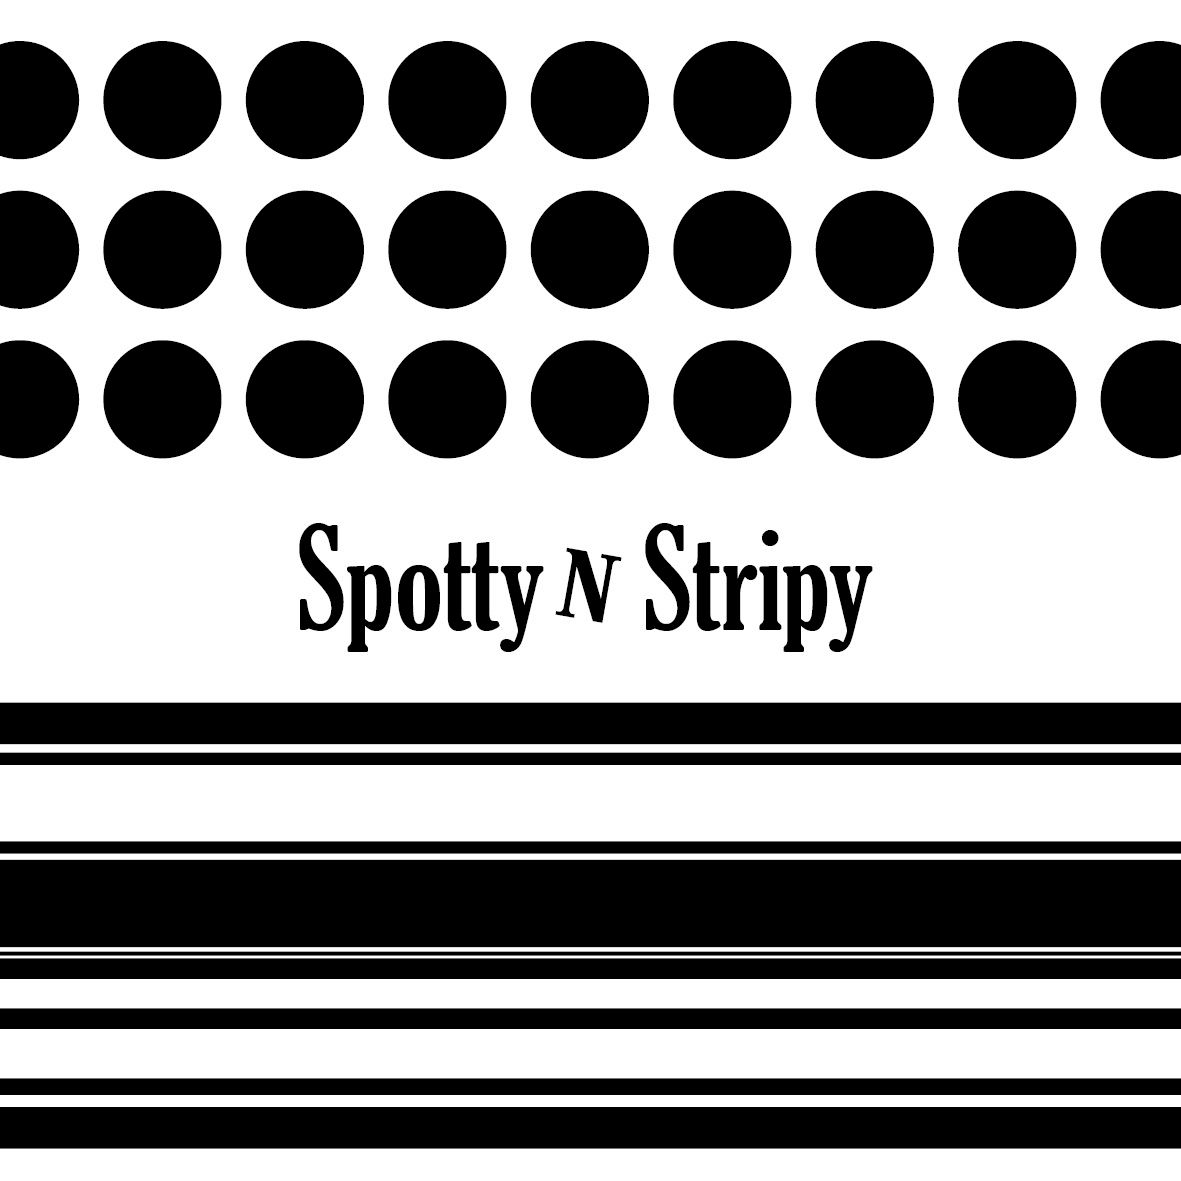 Spotty N Stripy